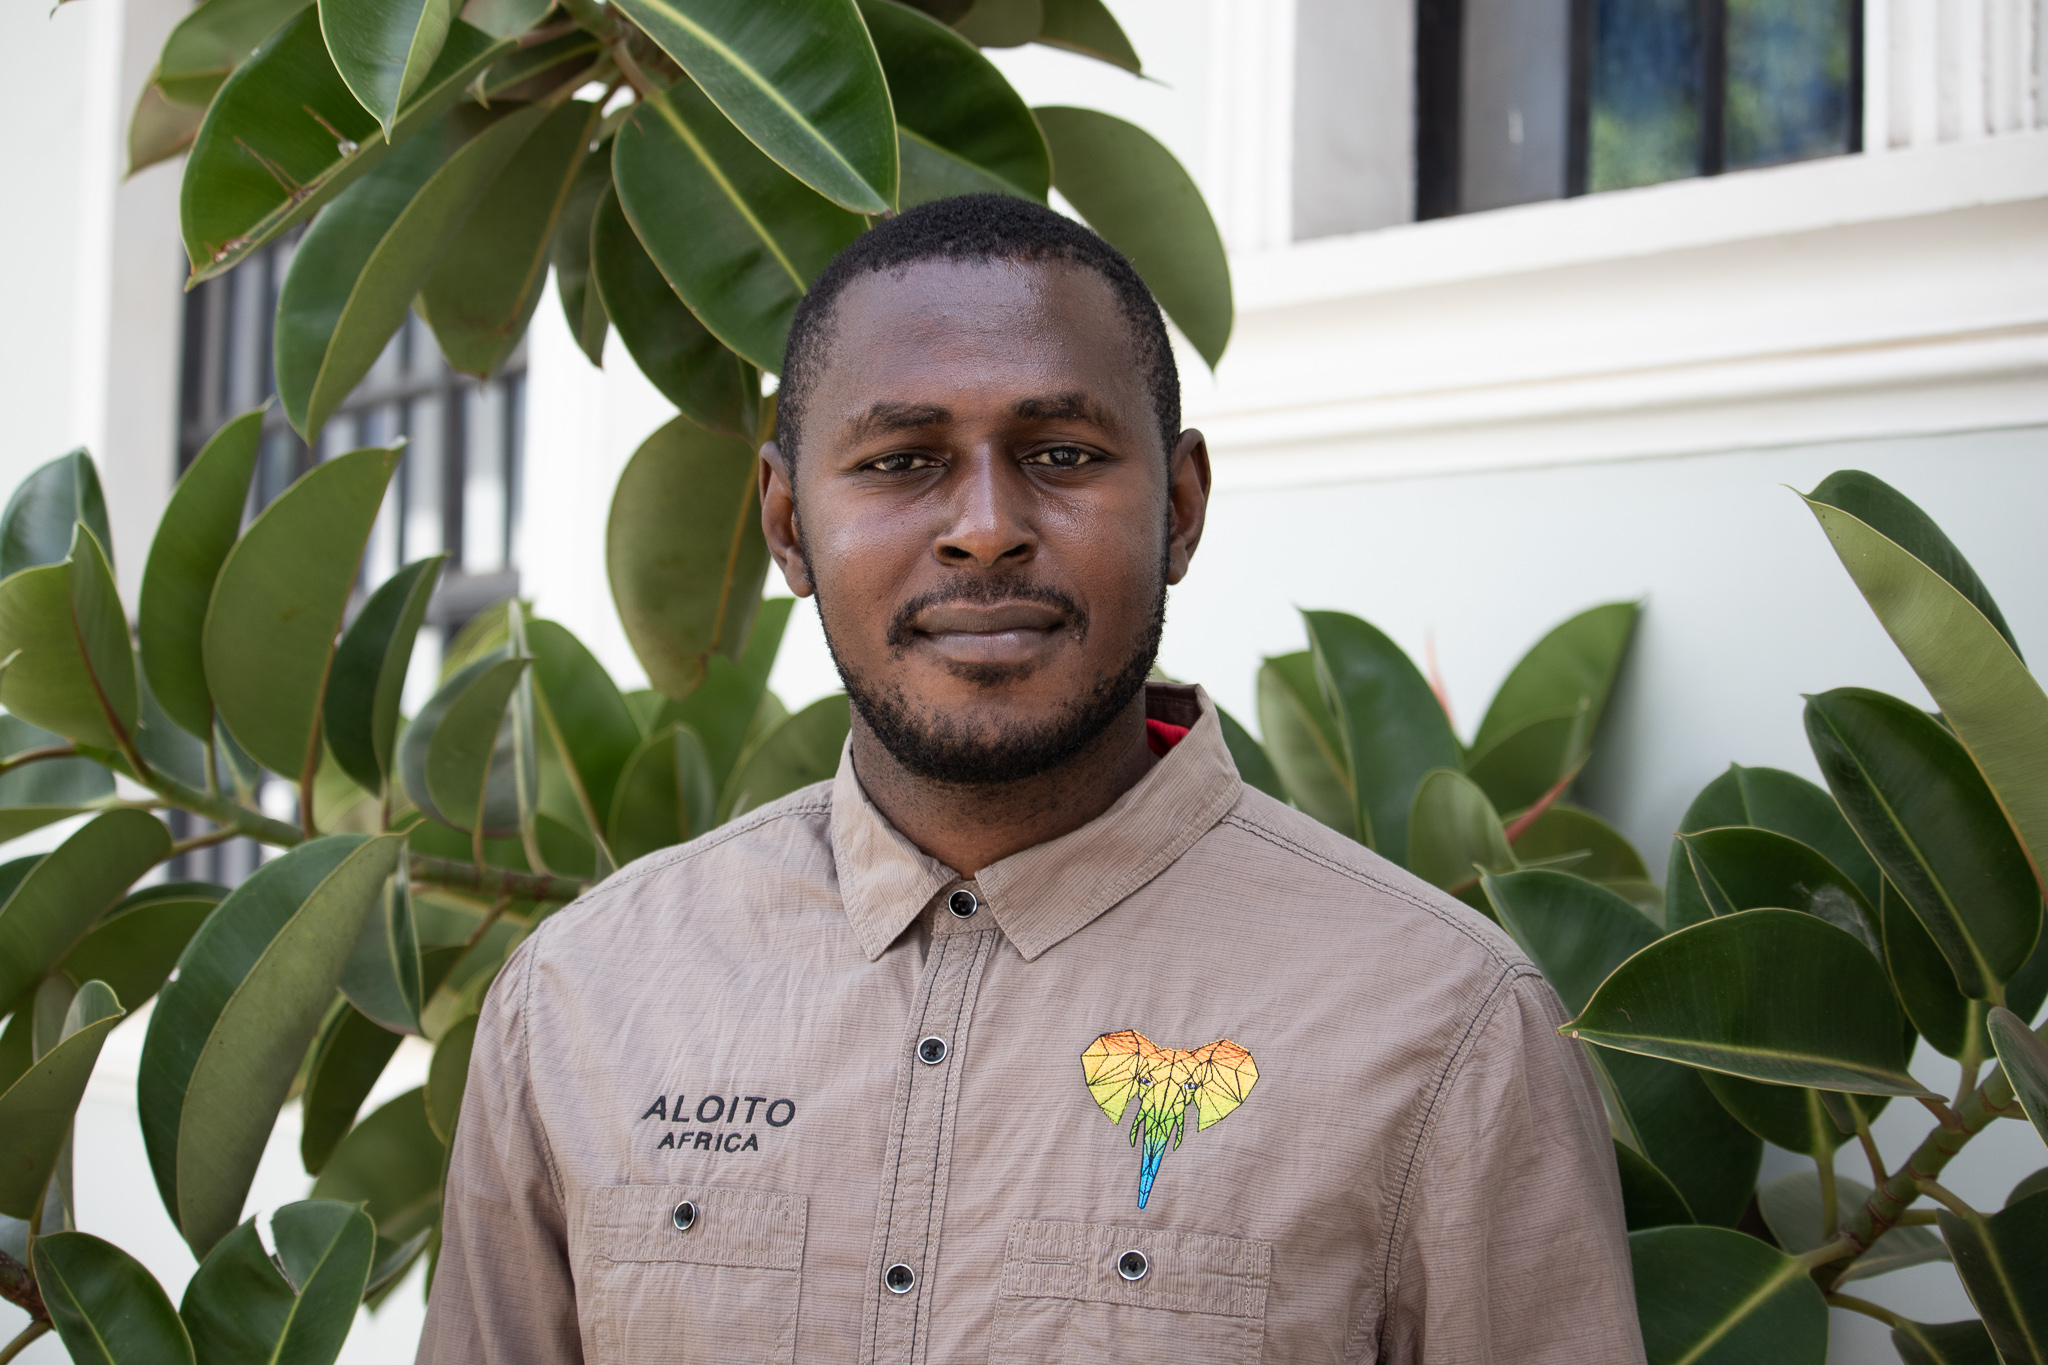 MBARINGO - Itinerary + Tour OperatorSpecializing in itinerary development, Mbaringo has over 8 years of experience working within the tourism industry. He is also the Professor of Tour Operations at The Tropical Centre Institute of Tanzania.